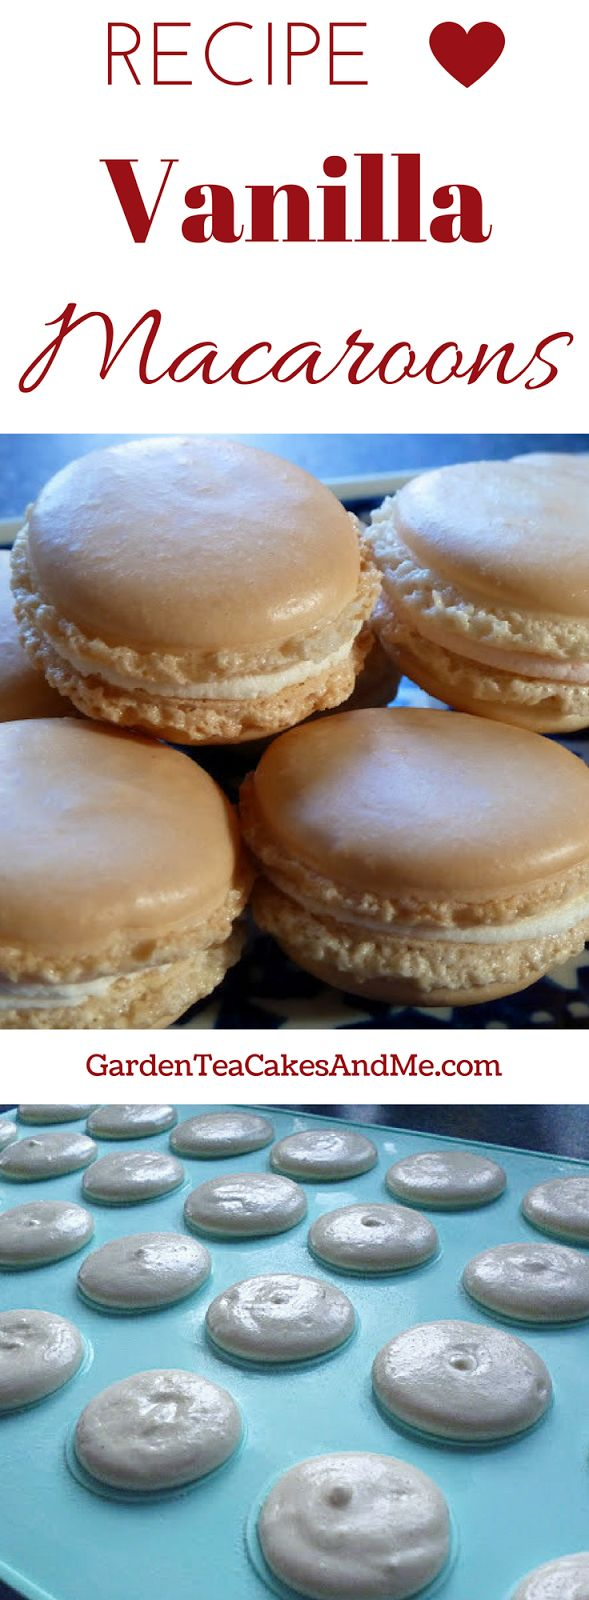 macaroons vanilla recipe afternoon tea macaroon mat baking essential